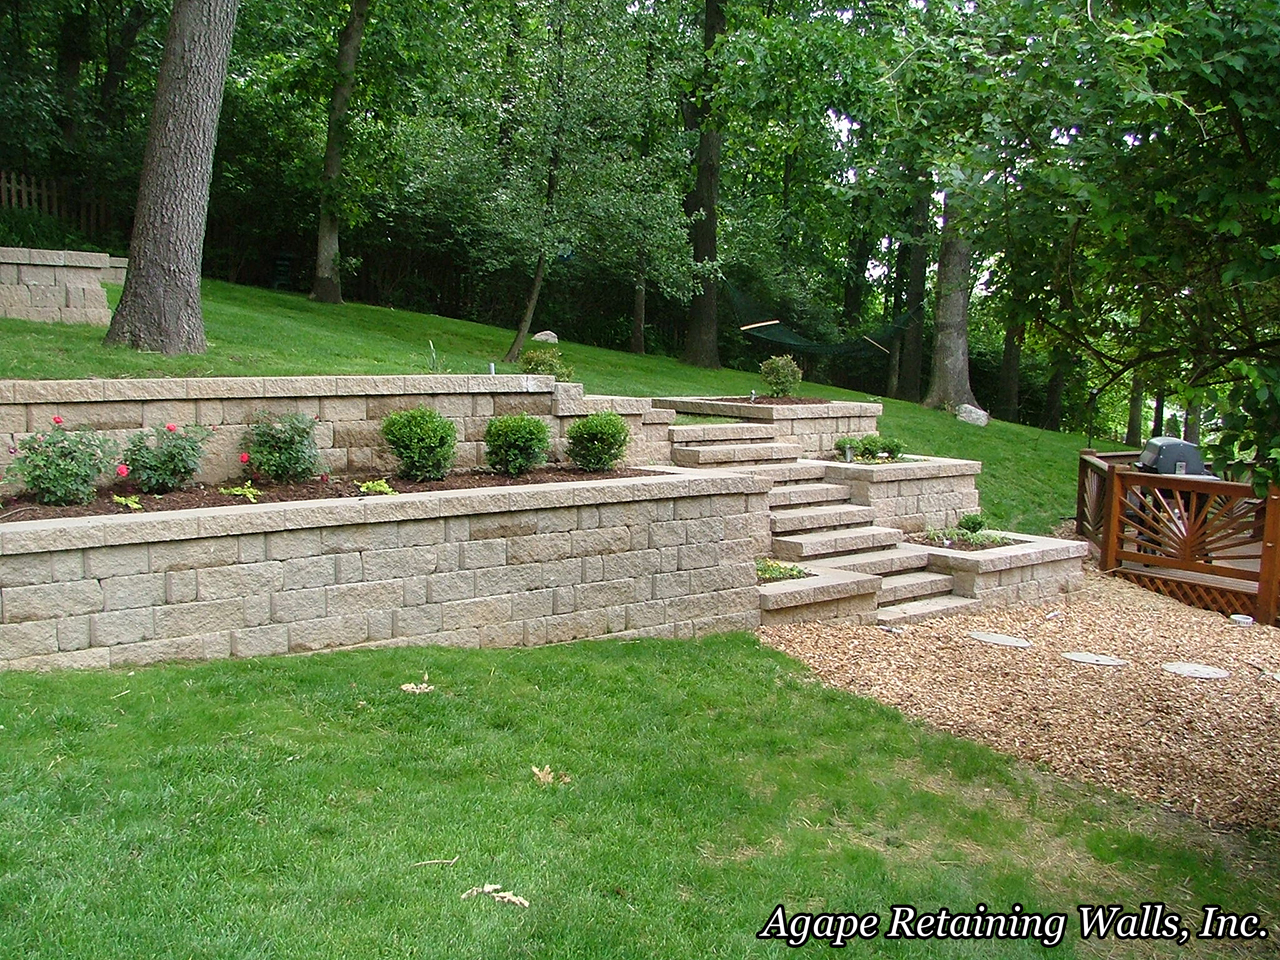 Agape retaining walls inc terrace photo album 3 for Landscape retaining wall design